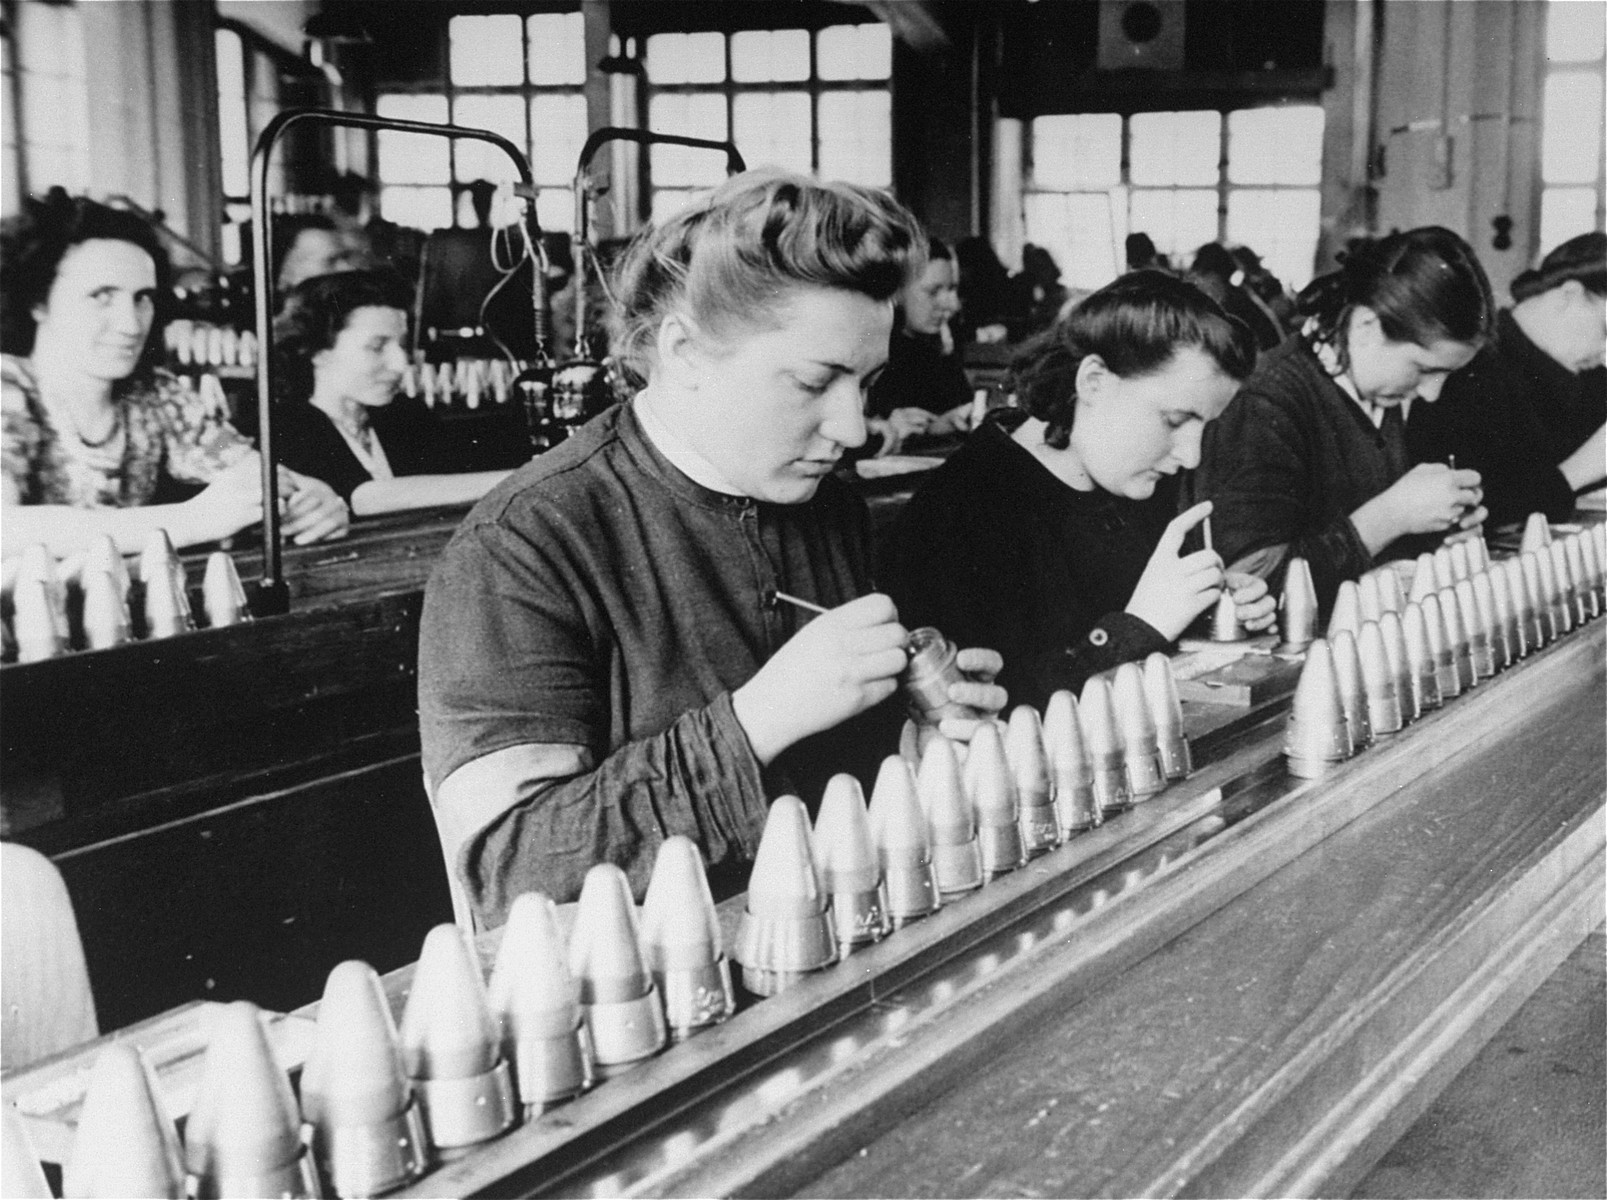 Female foreign workers (in dark clothing) from the Stadelheim prison work in a factory owned by the AGFA camera company.  This photograph was submitted in evidence as part of the case against I.G. Farben.